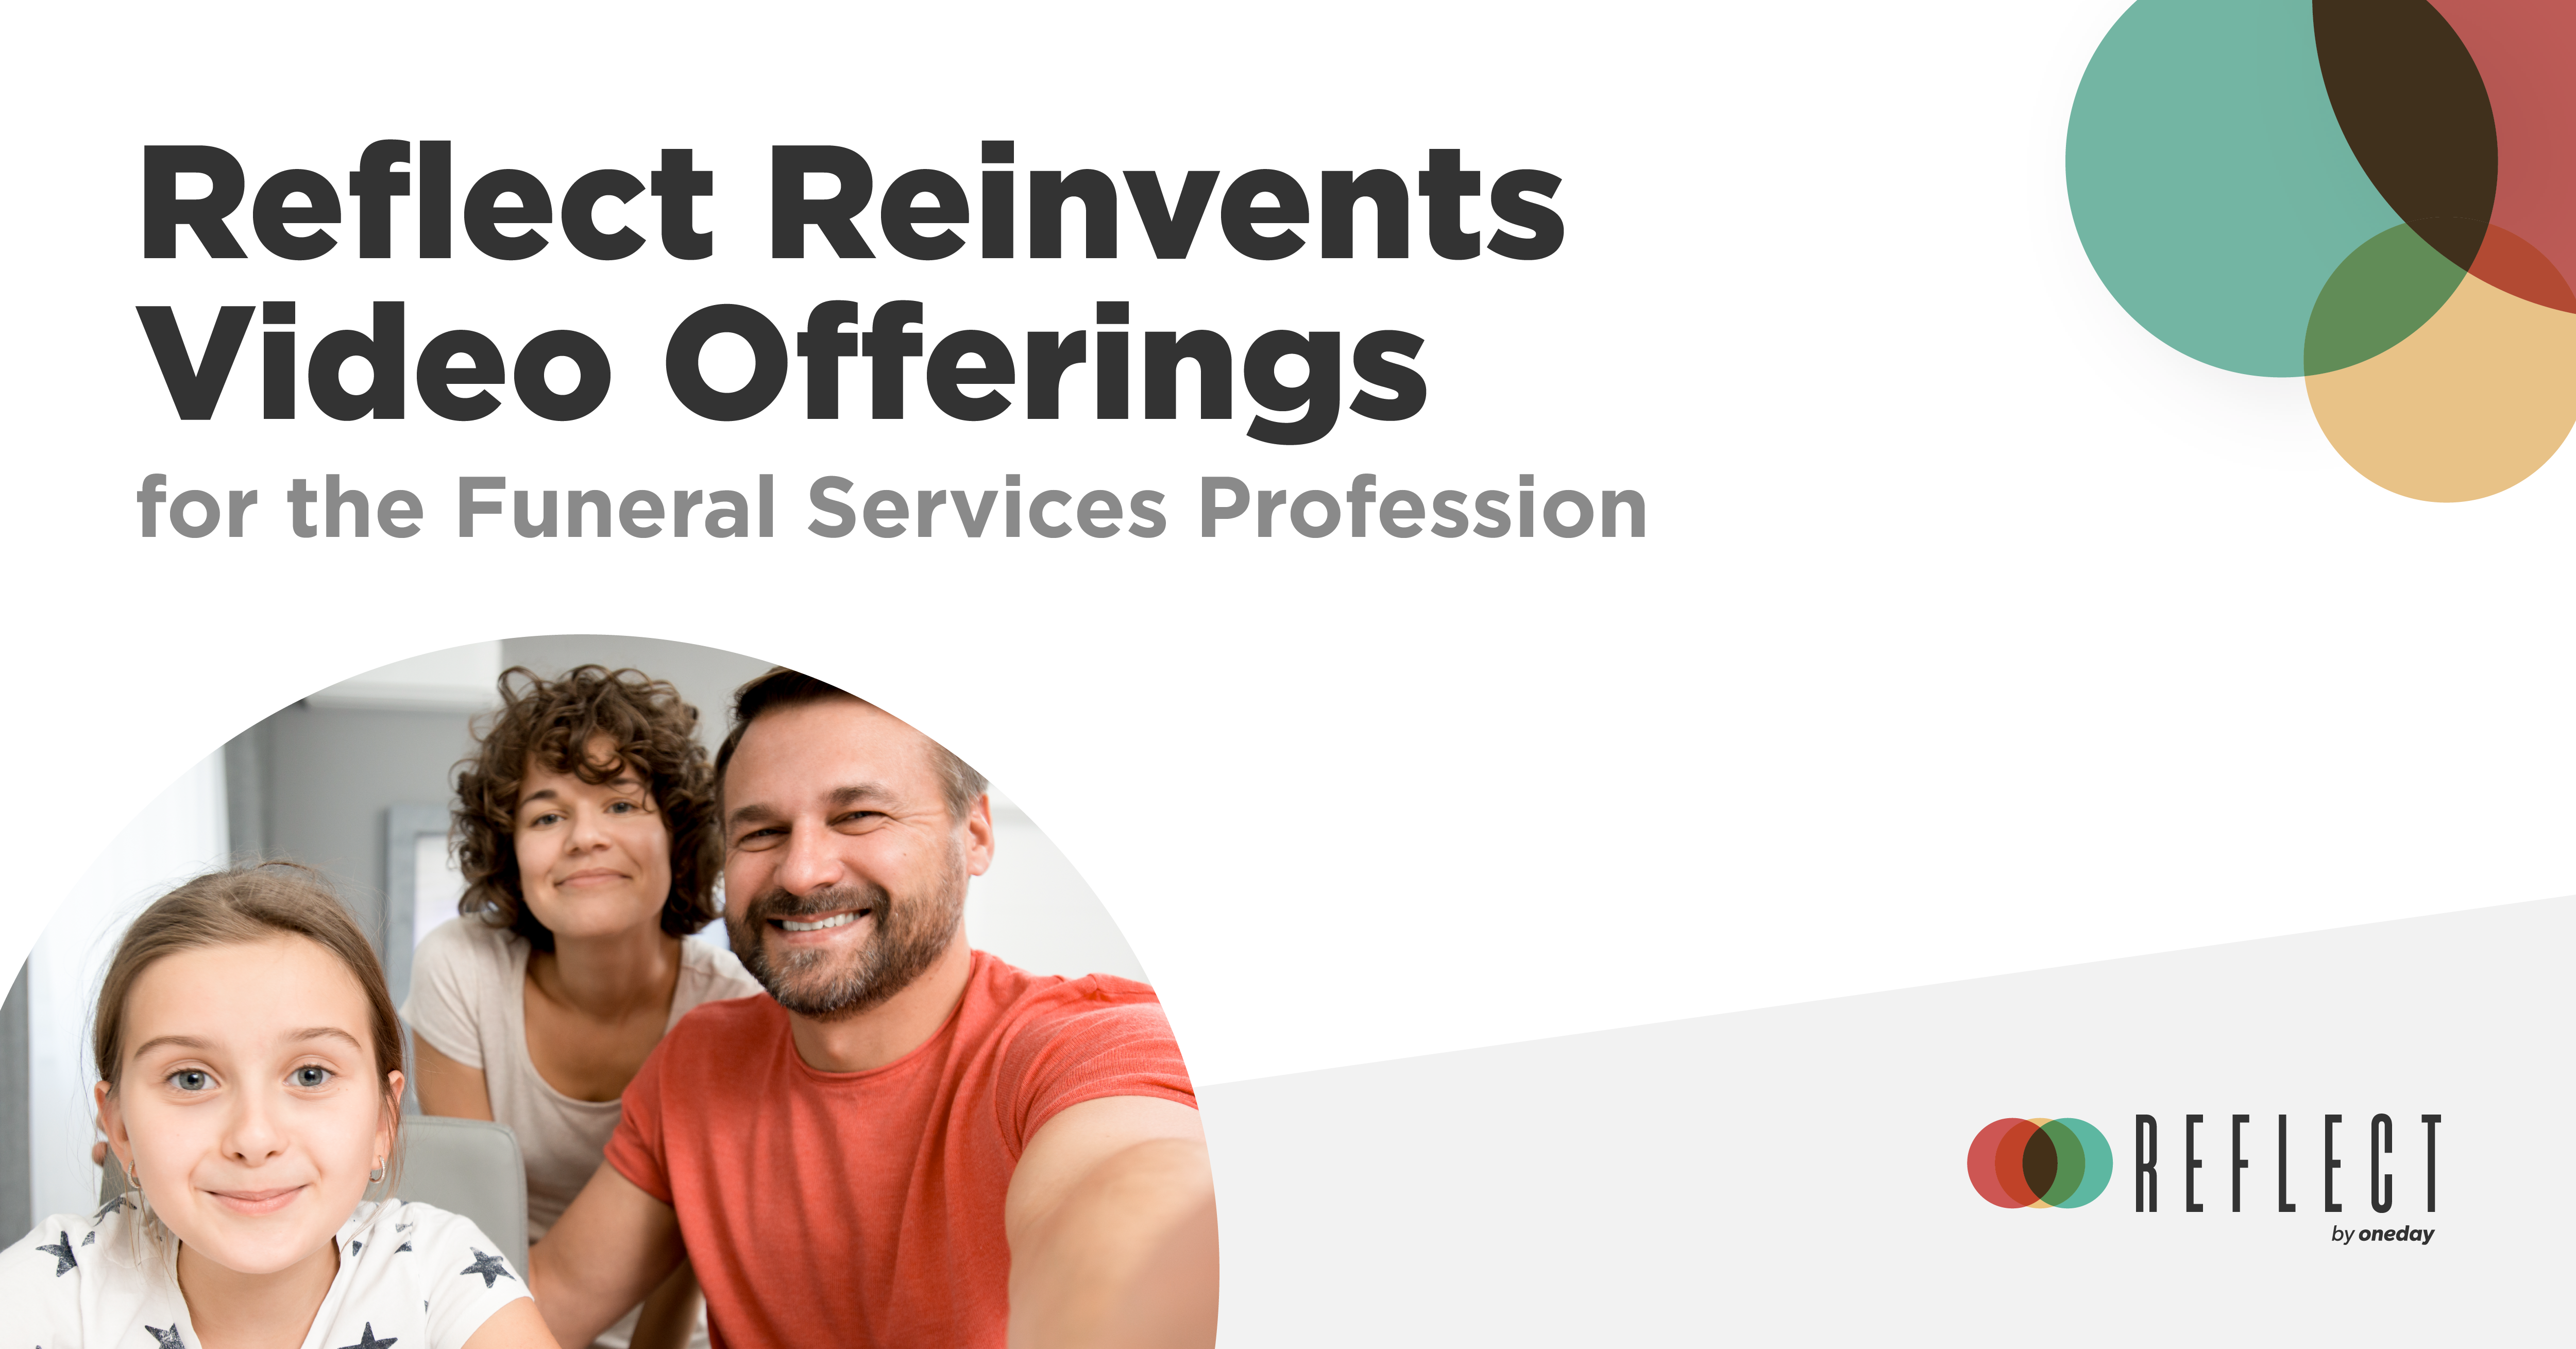 Reflect Reinvents Video Offerings for the Funeral Services Profession